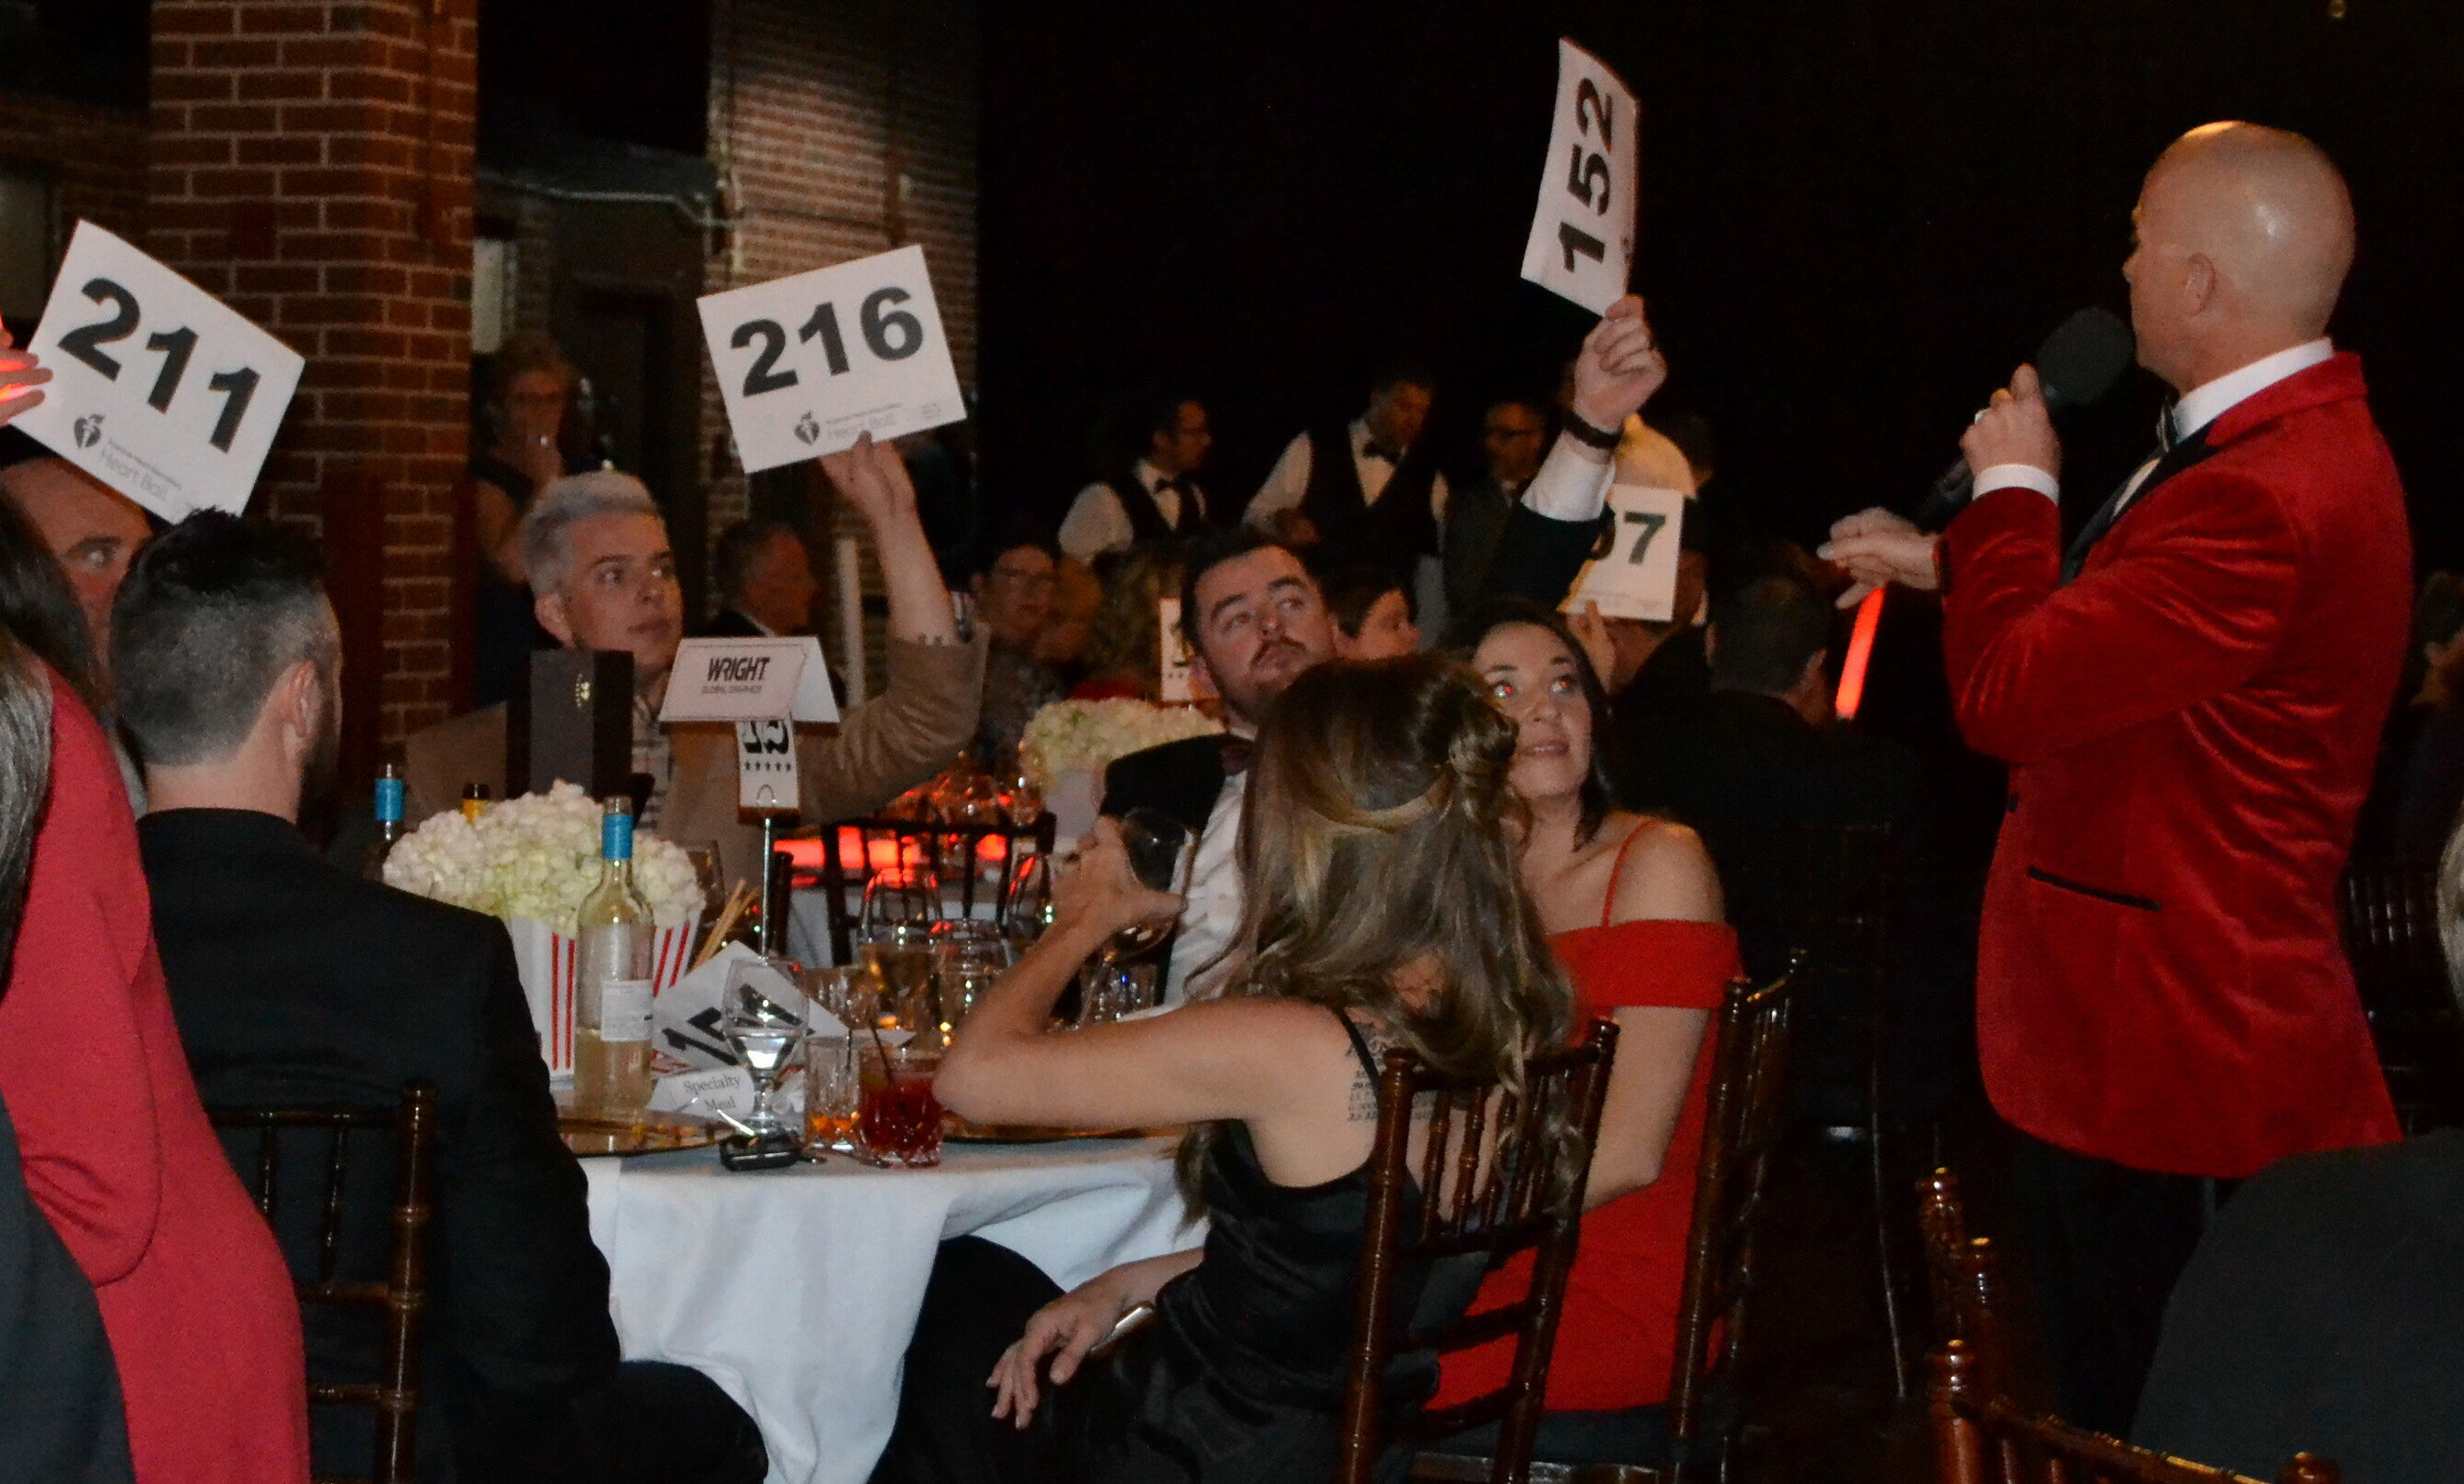 A group of people sitting at a table hold up signs with numbers on them